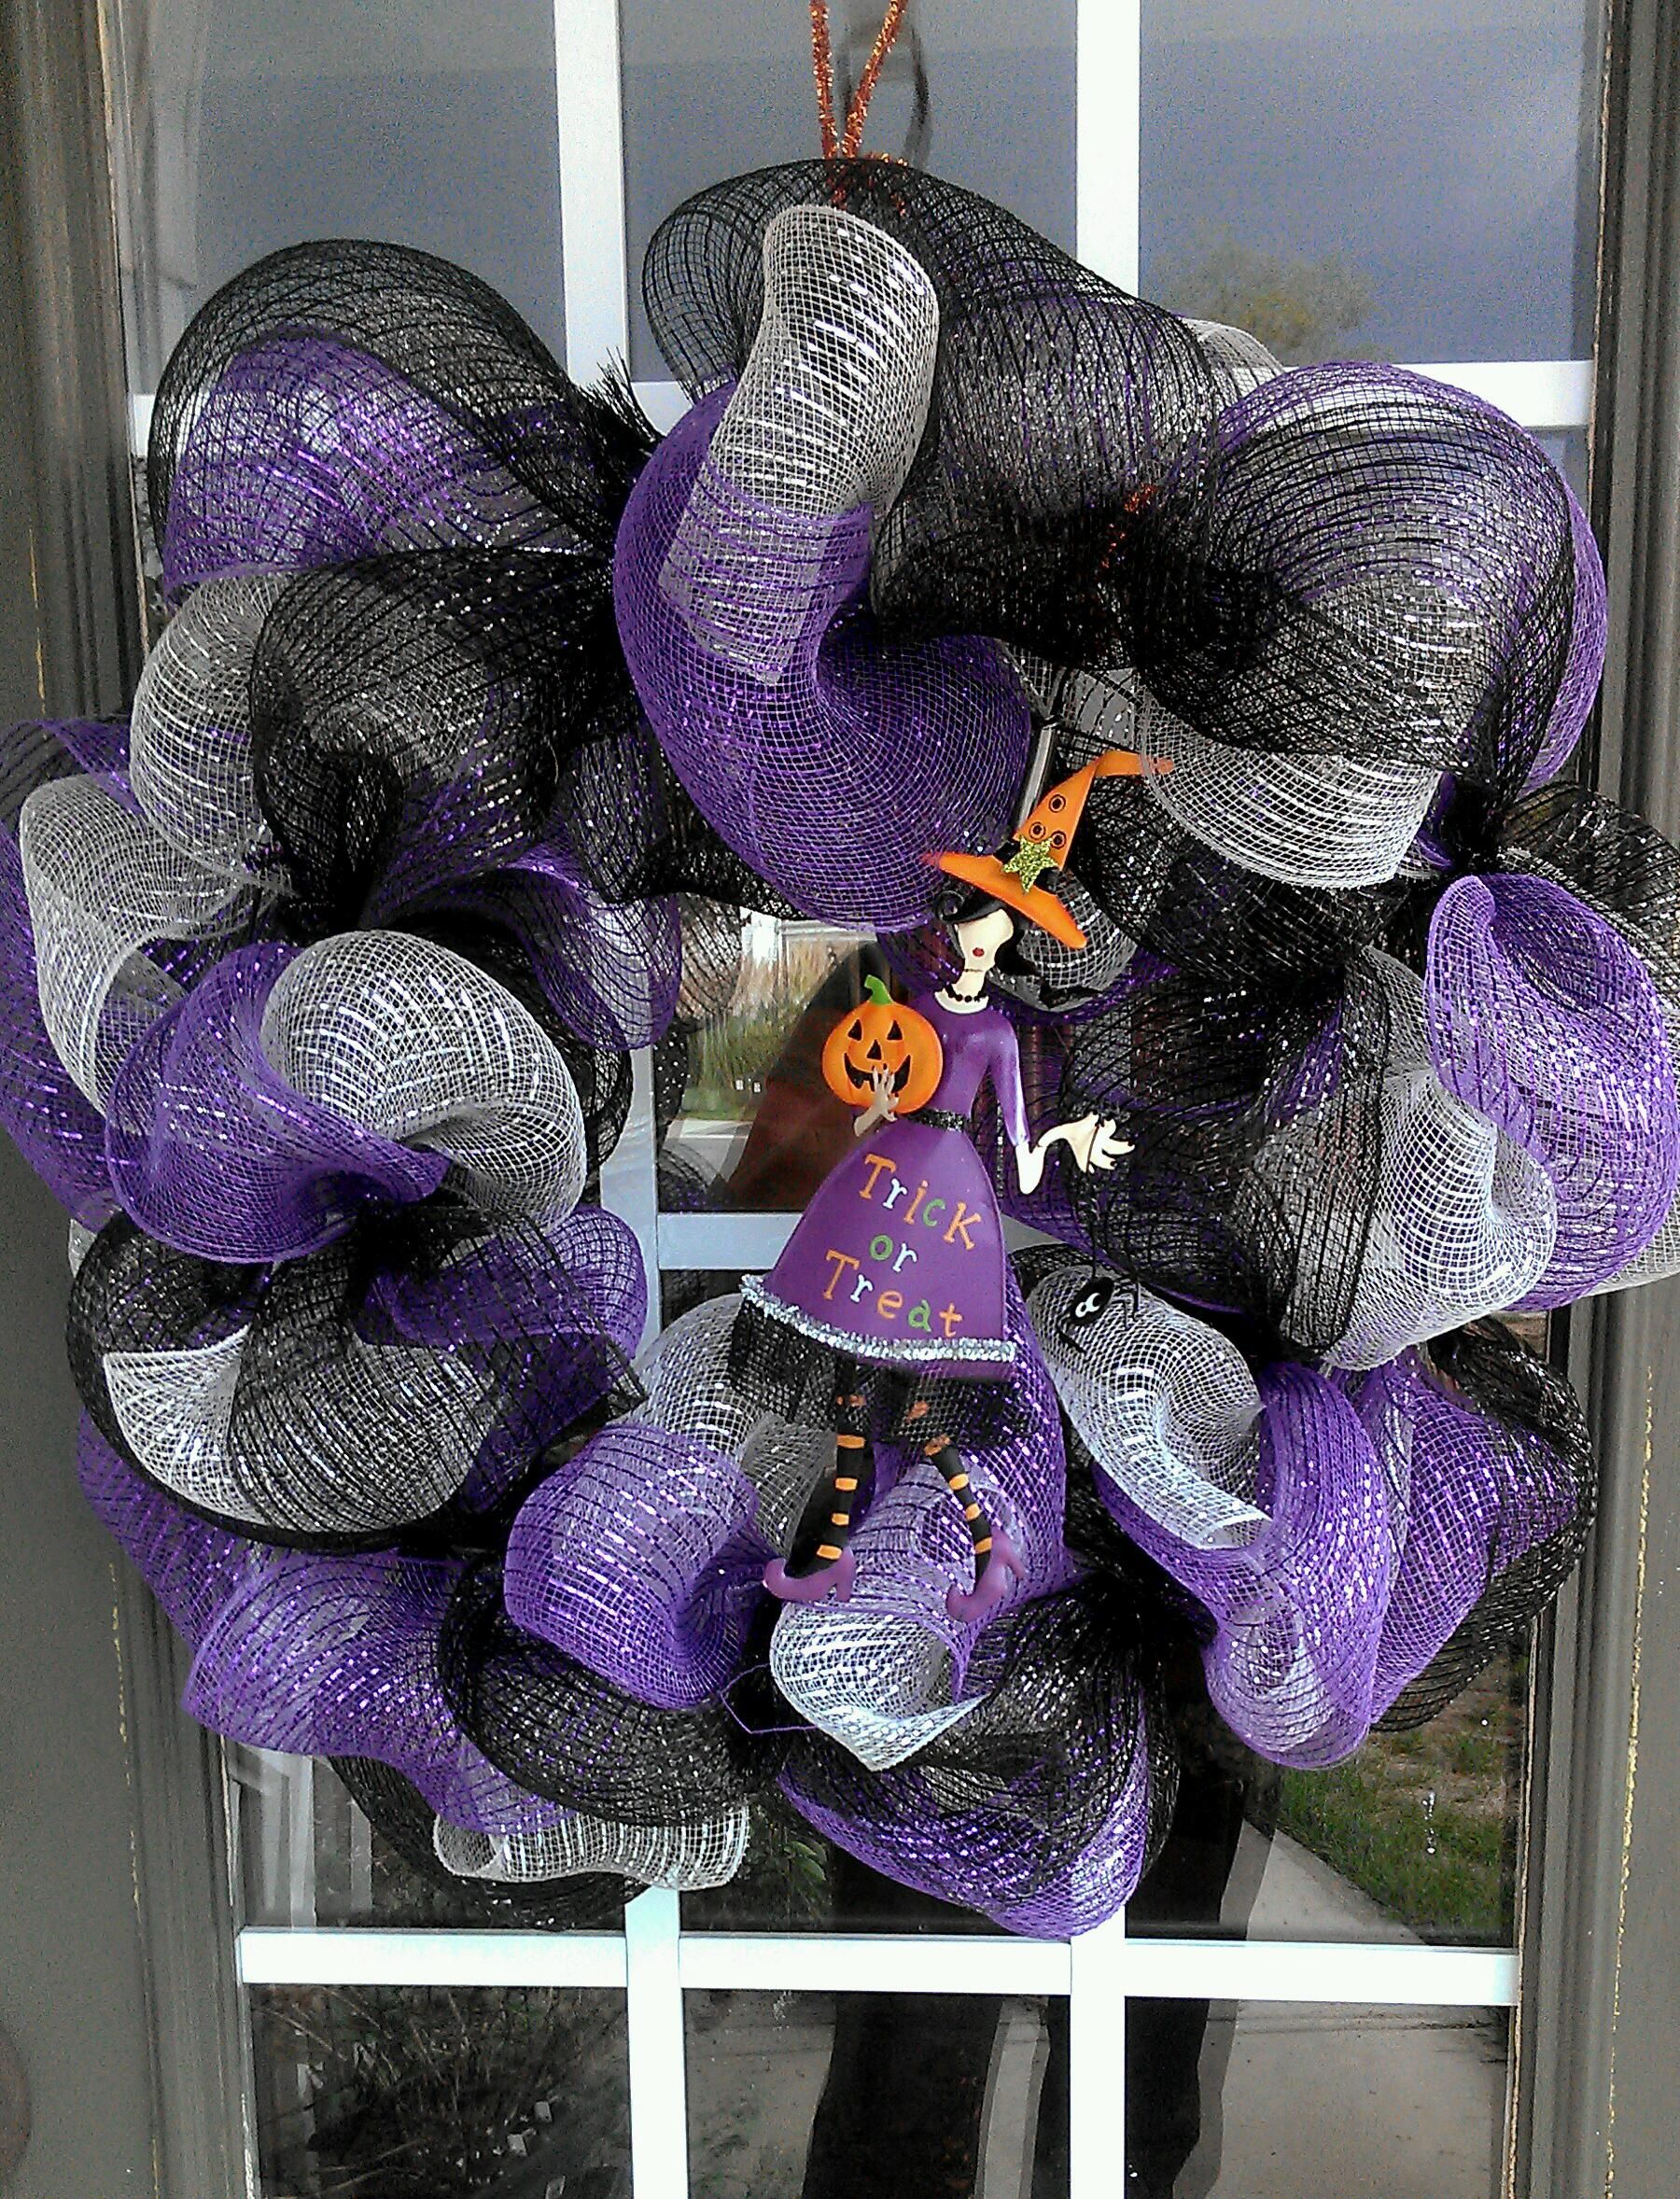 My first attempt at a Halloween wreath. Used geo mesh